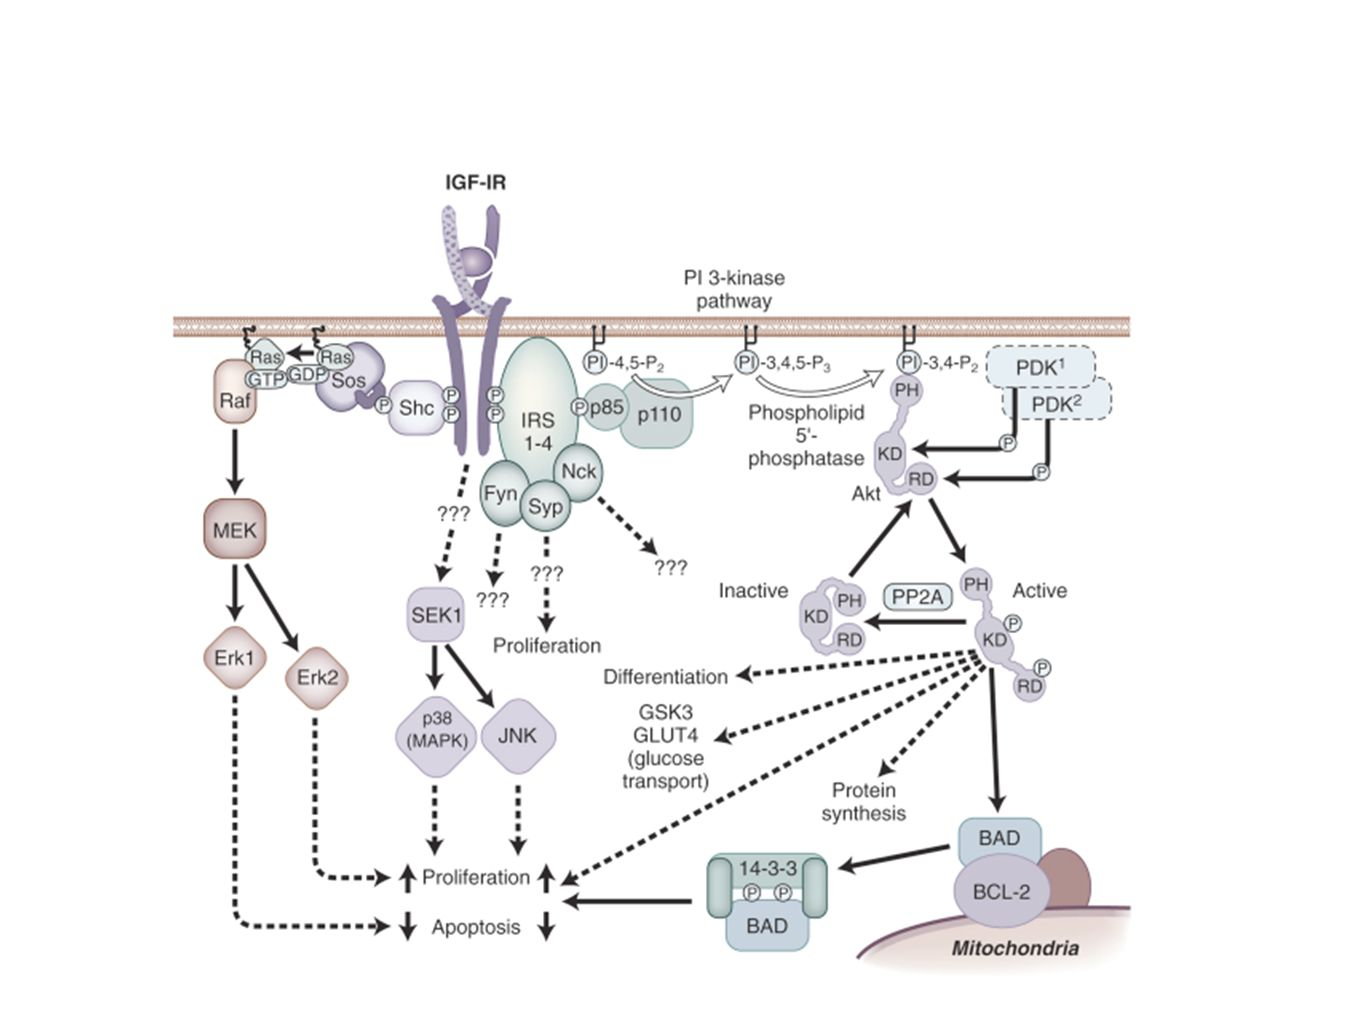 Schematic representation of intracellular signaling pathways of the IGF-I receptor.